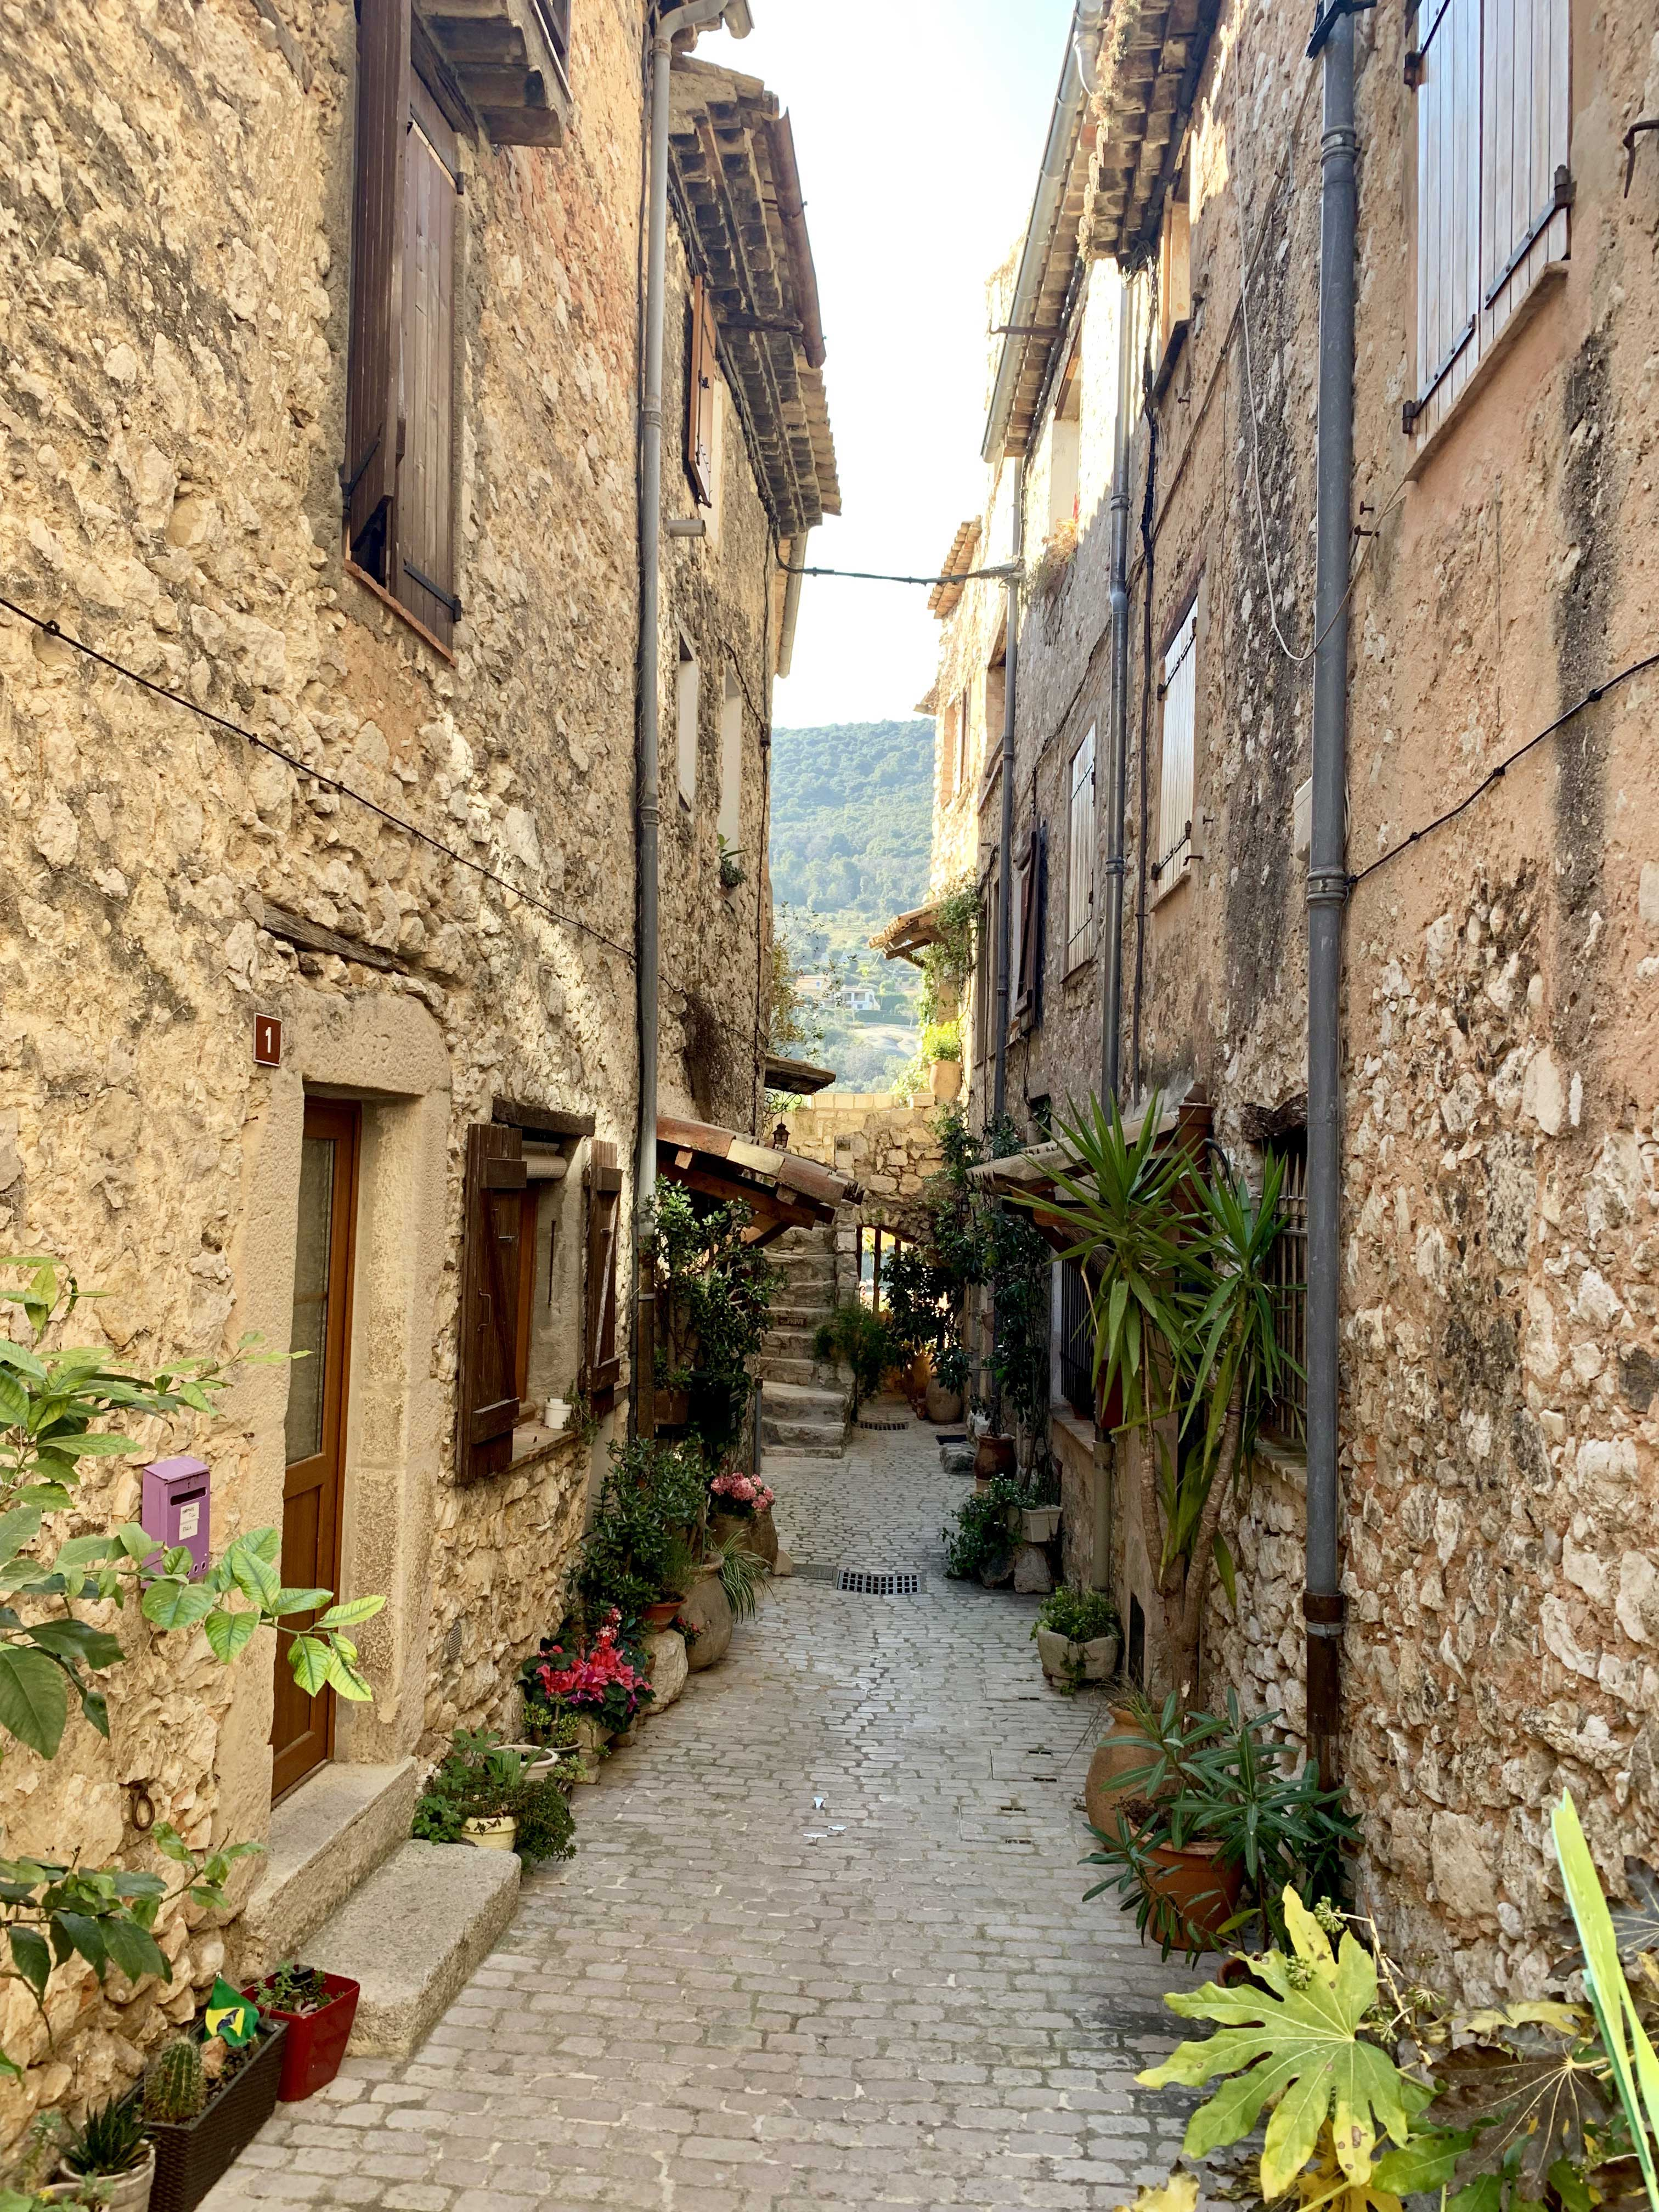 City of Tourrettes-sur-Loup - Credit: Summer Hotel Group